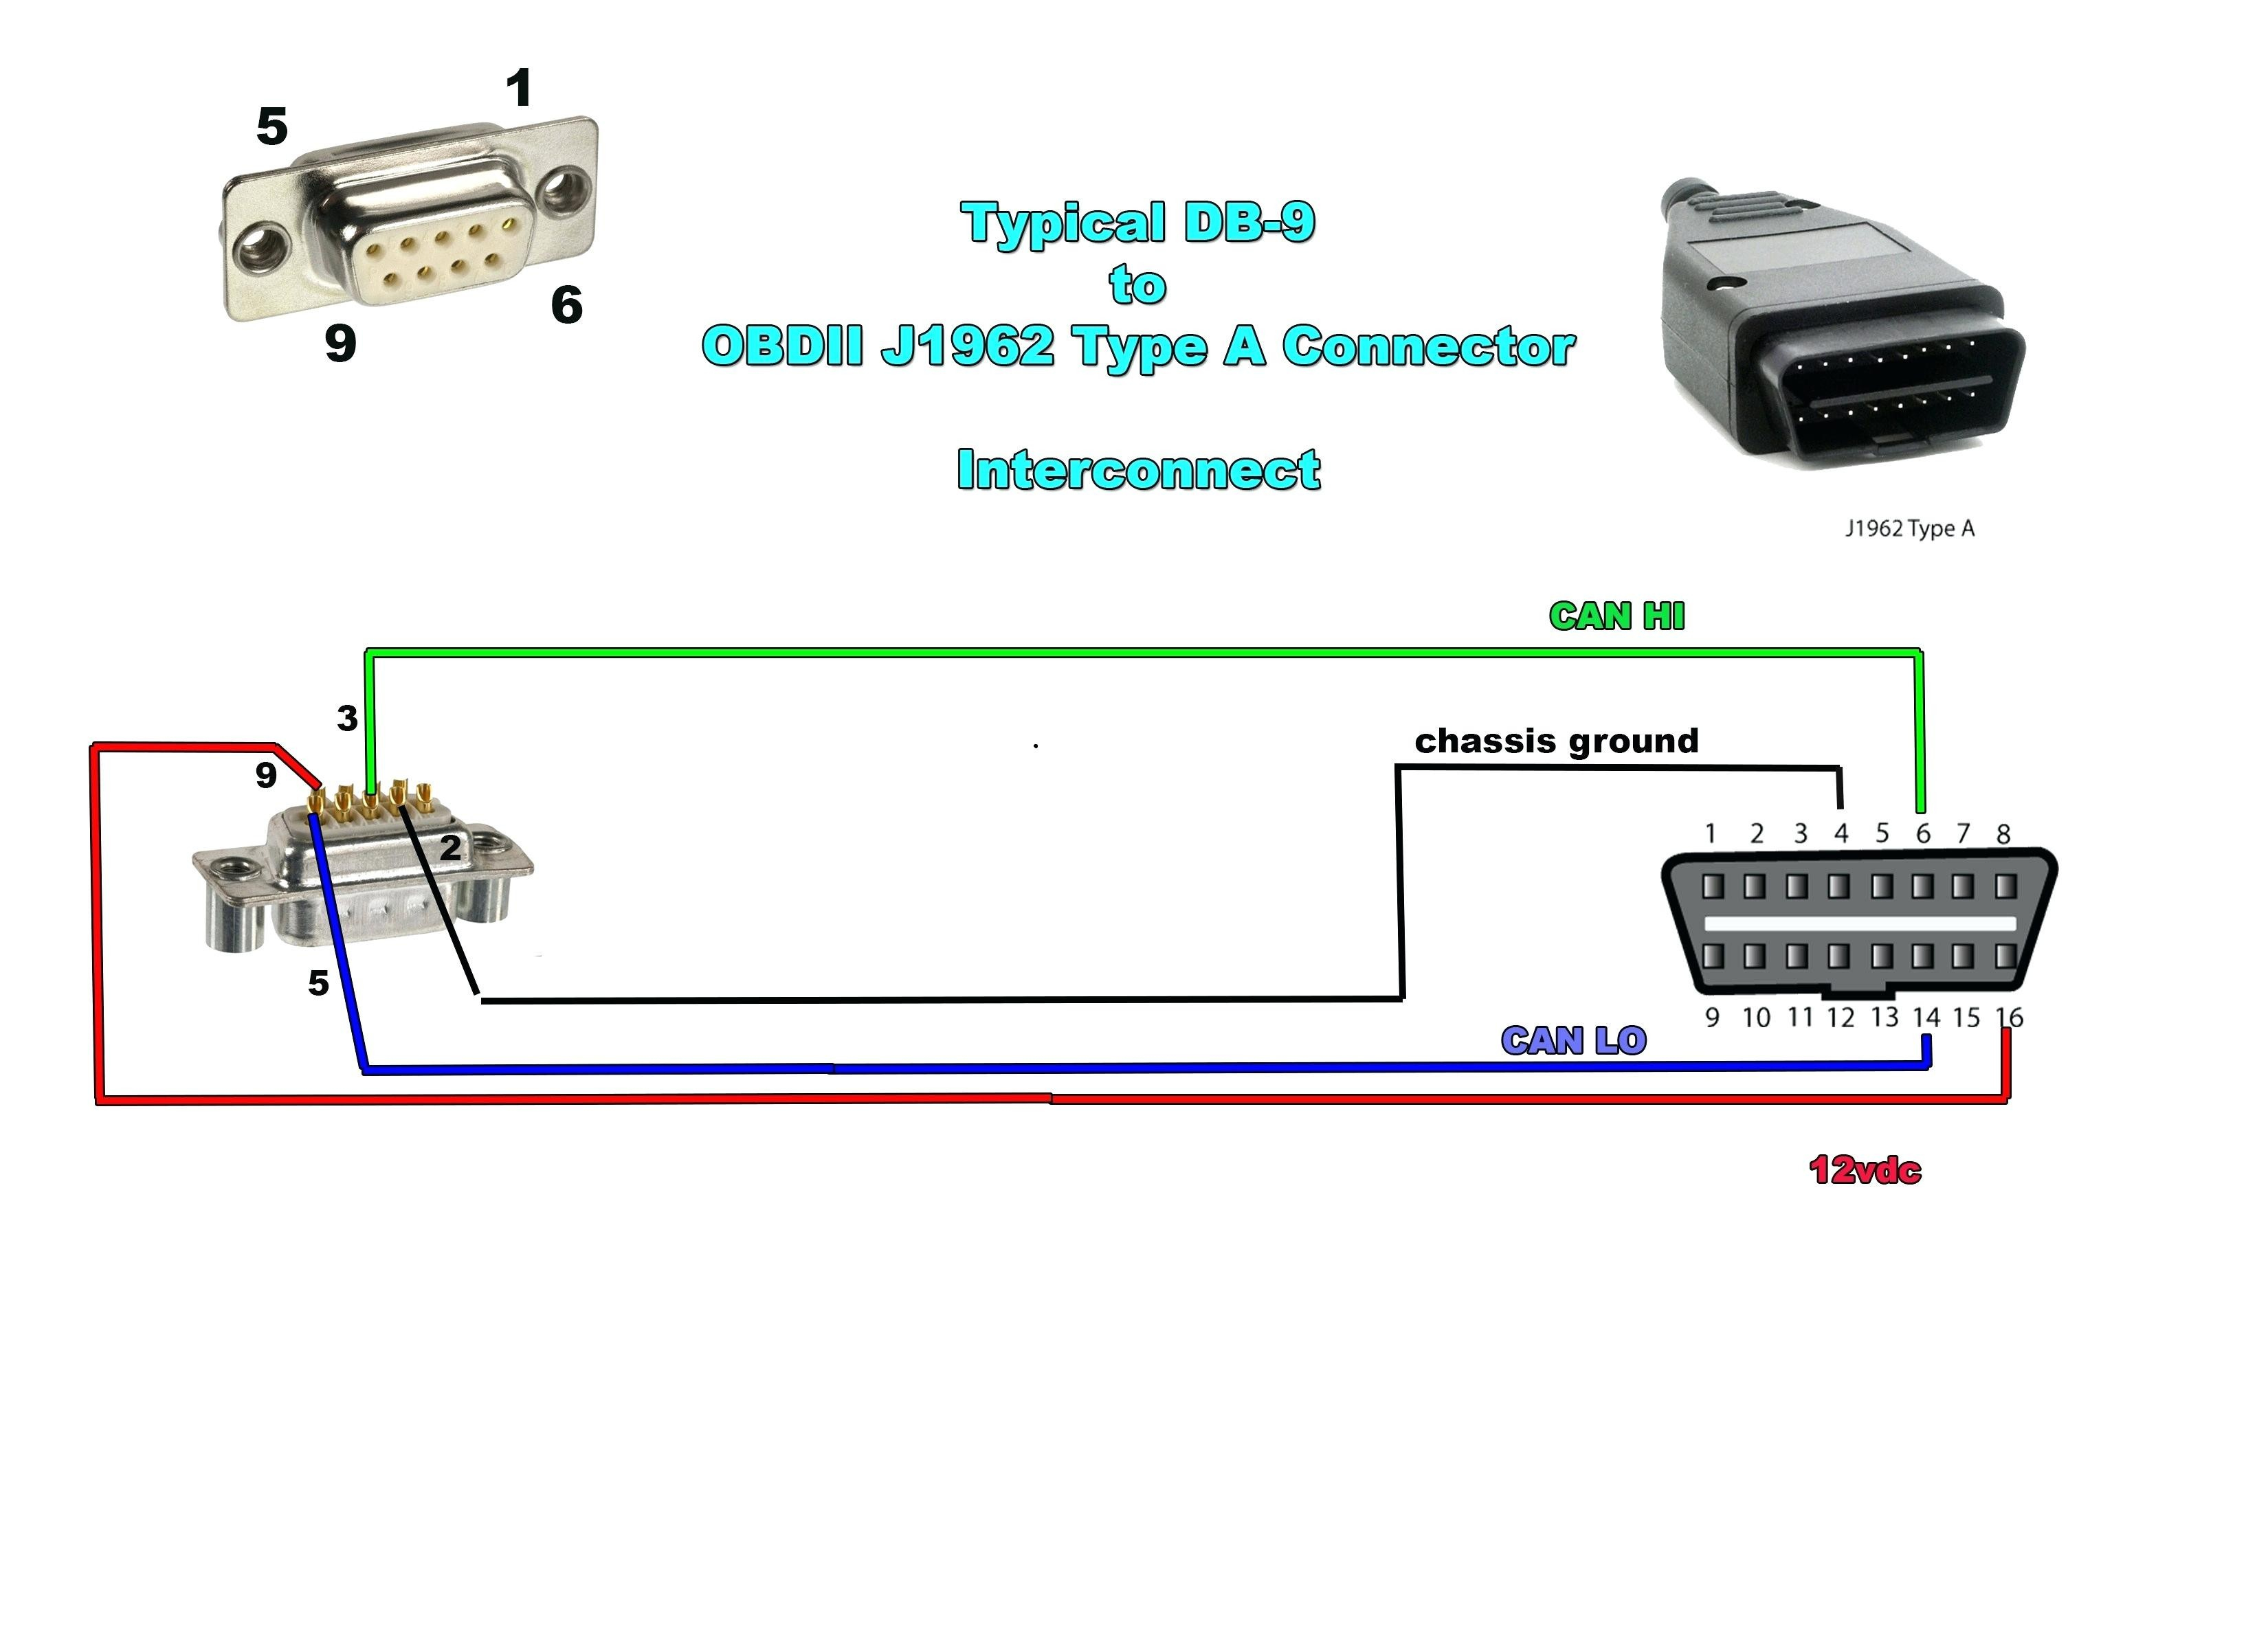 Obd2 Connector To Usb Wiring Diagram | Wiring Diagram - Wiring Diagram For Obd2 Port To Usb